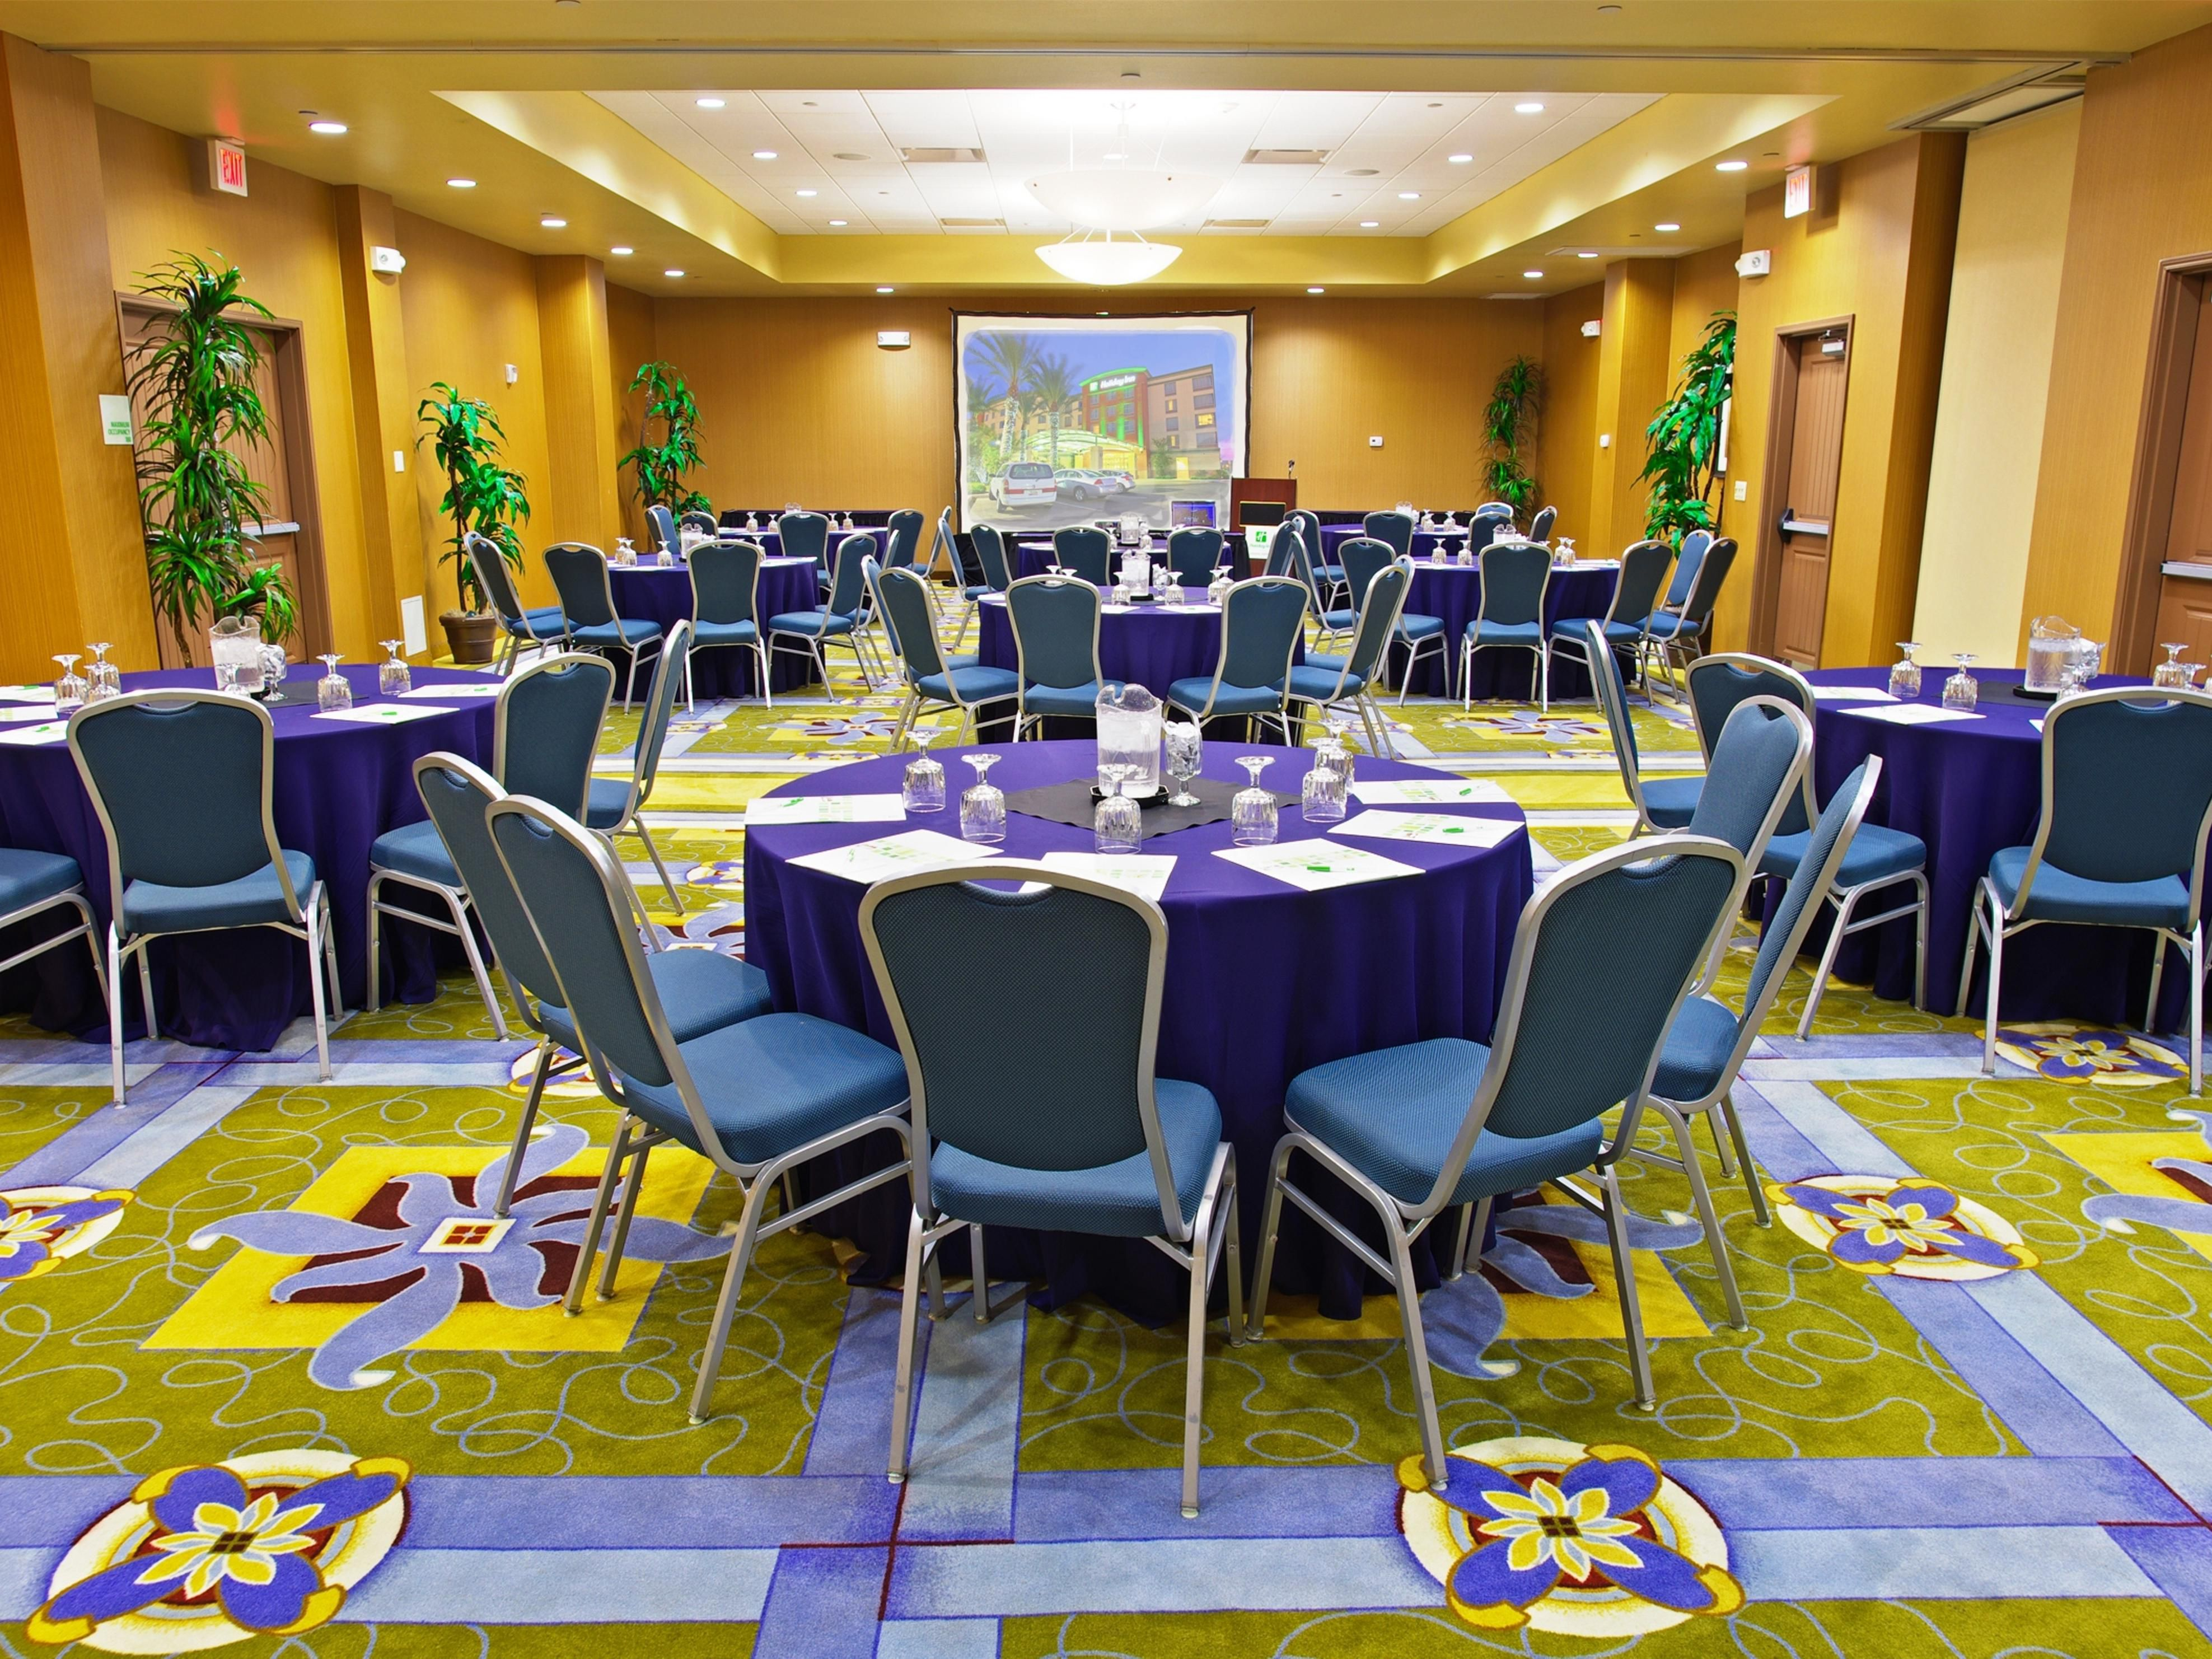 Ballroom to accommodate meetings and events of up to 120 guests